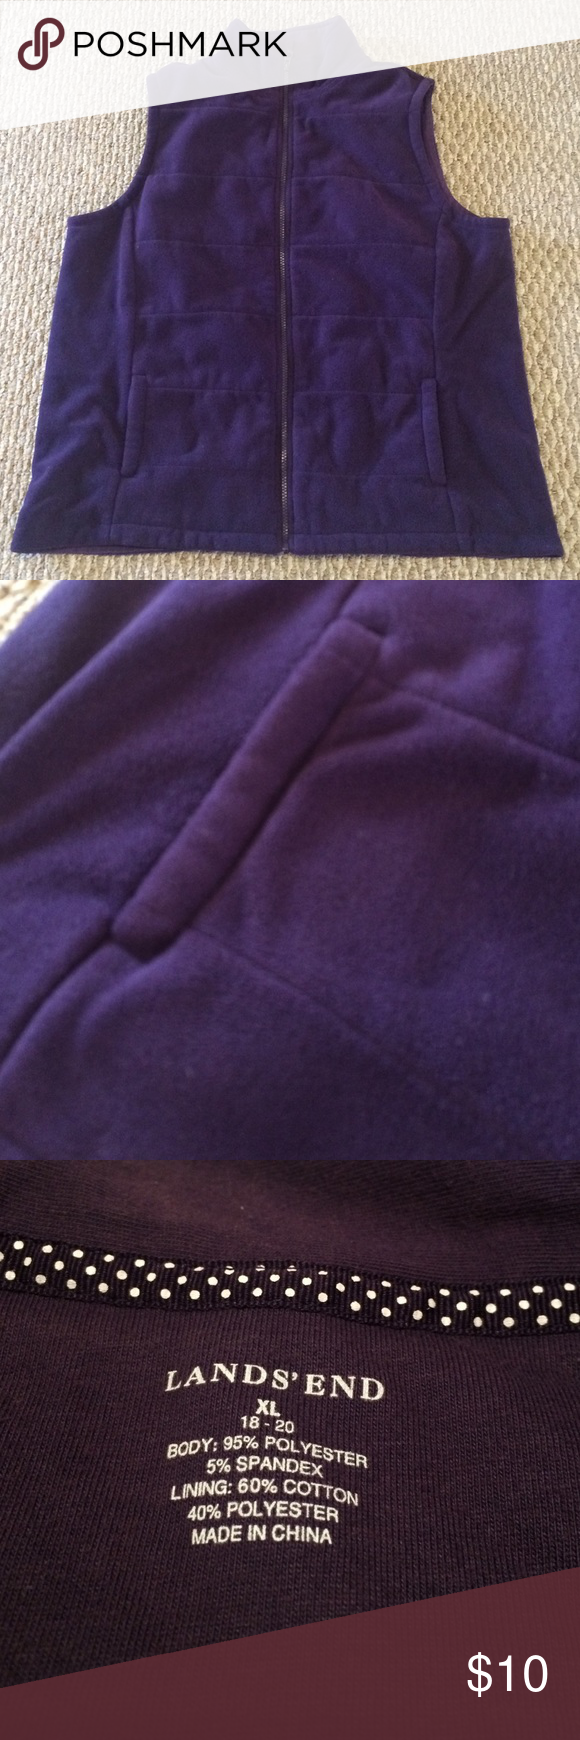 Lands' End Fleece Vest Excellent condition. Deep plum. Lands' End Jackets & Coats Vests